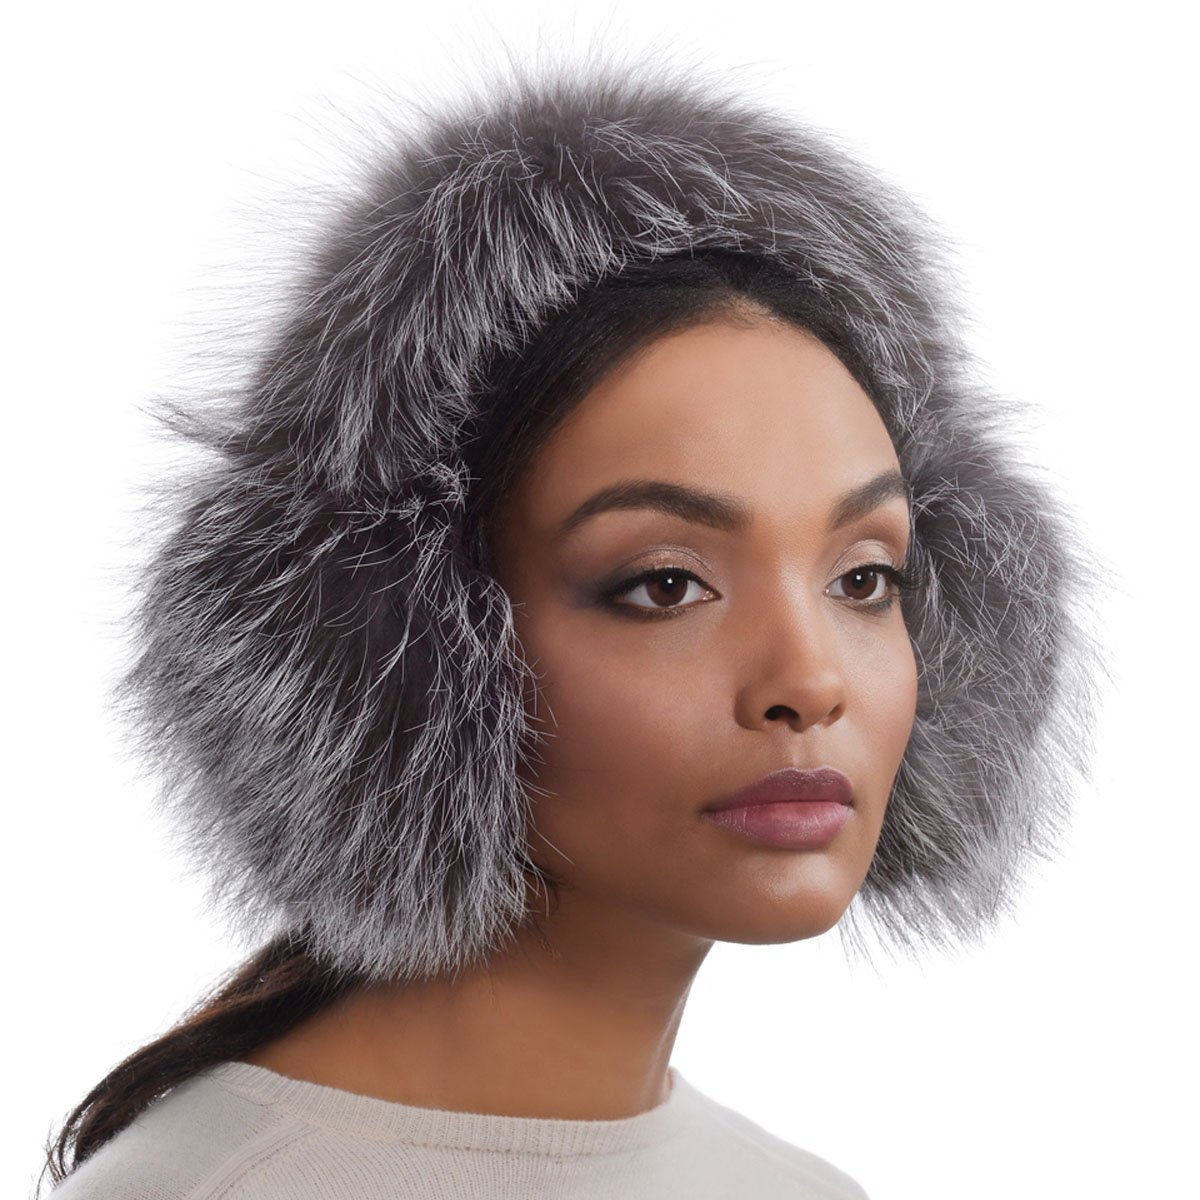 Eric Javits Luxury Fashion Designer Women's Headwear Hat - Fur EarMuffs - Silver FOX by Eric Javits